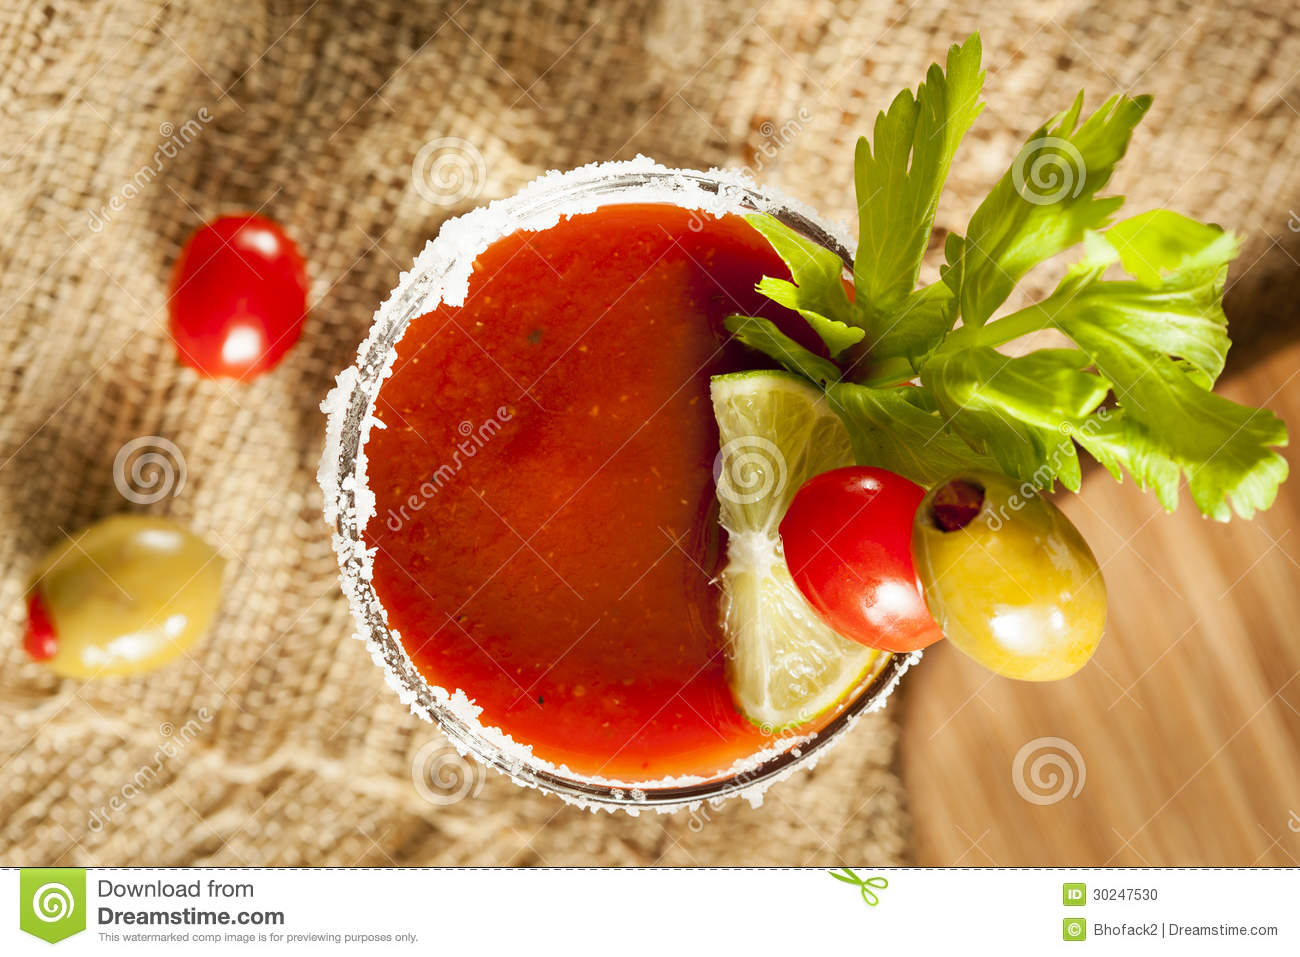 Spicy Bloody Mary Alcoholic Drink Royalty Free Stock